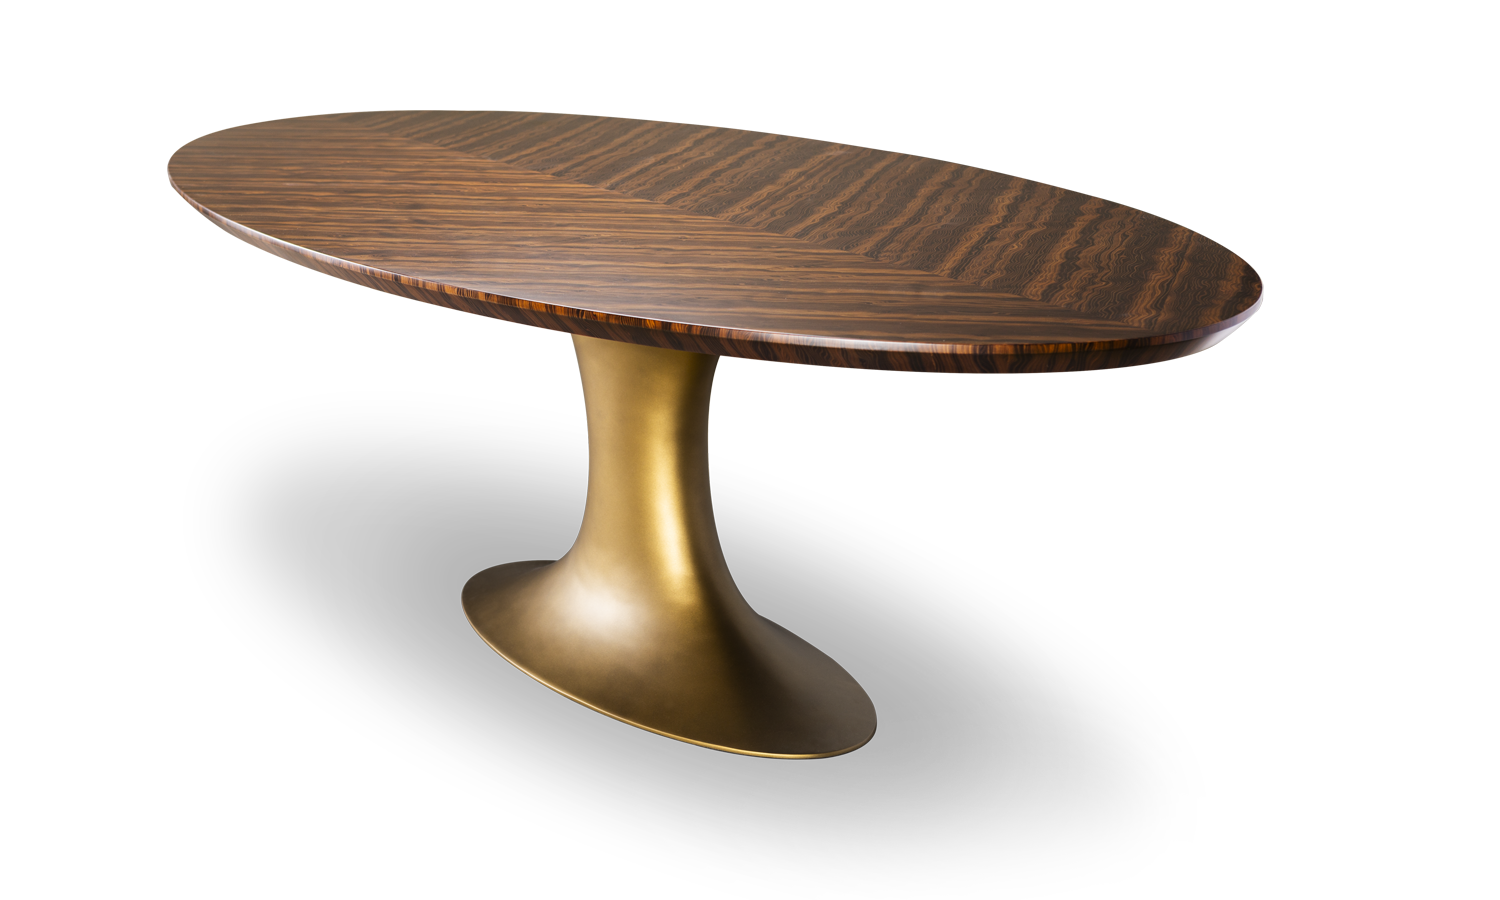 table-ines-hammered-oval-hamiltonconte-packshot4.png